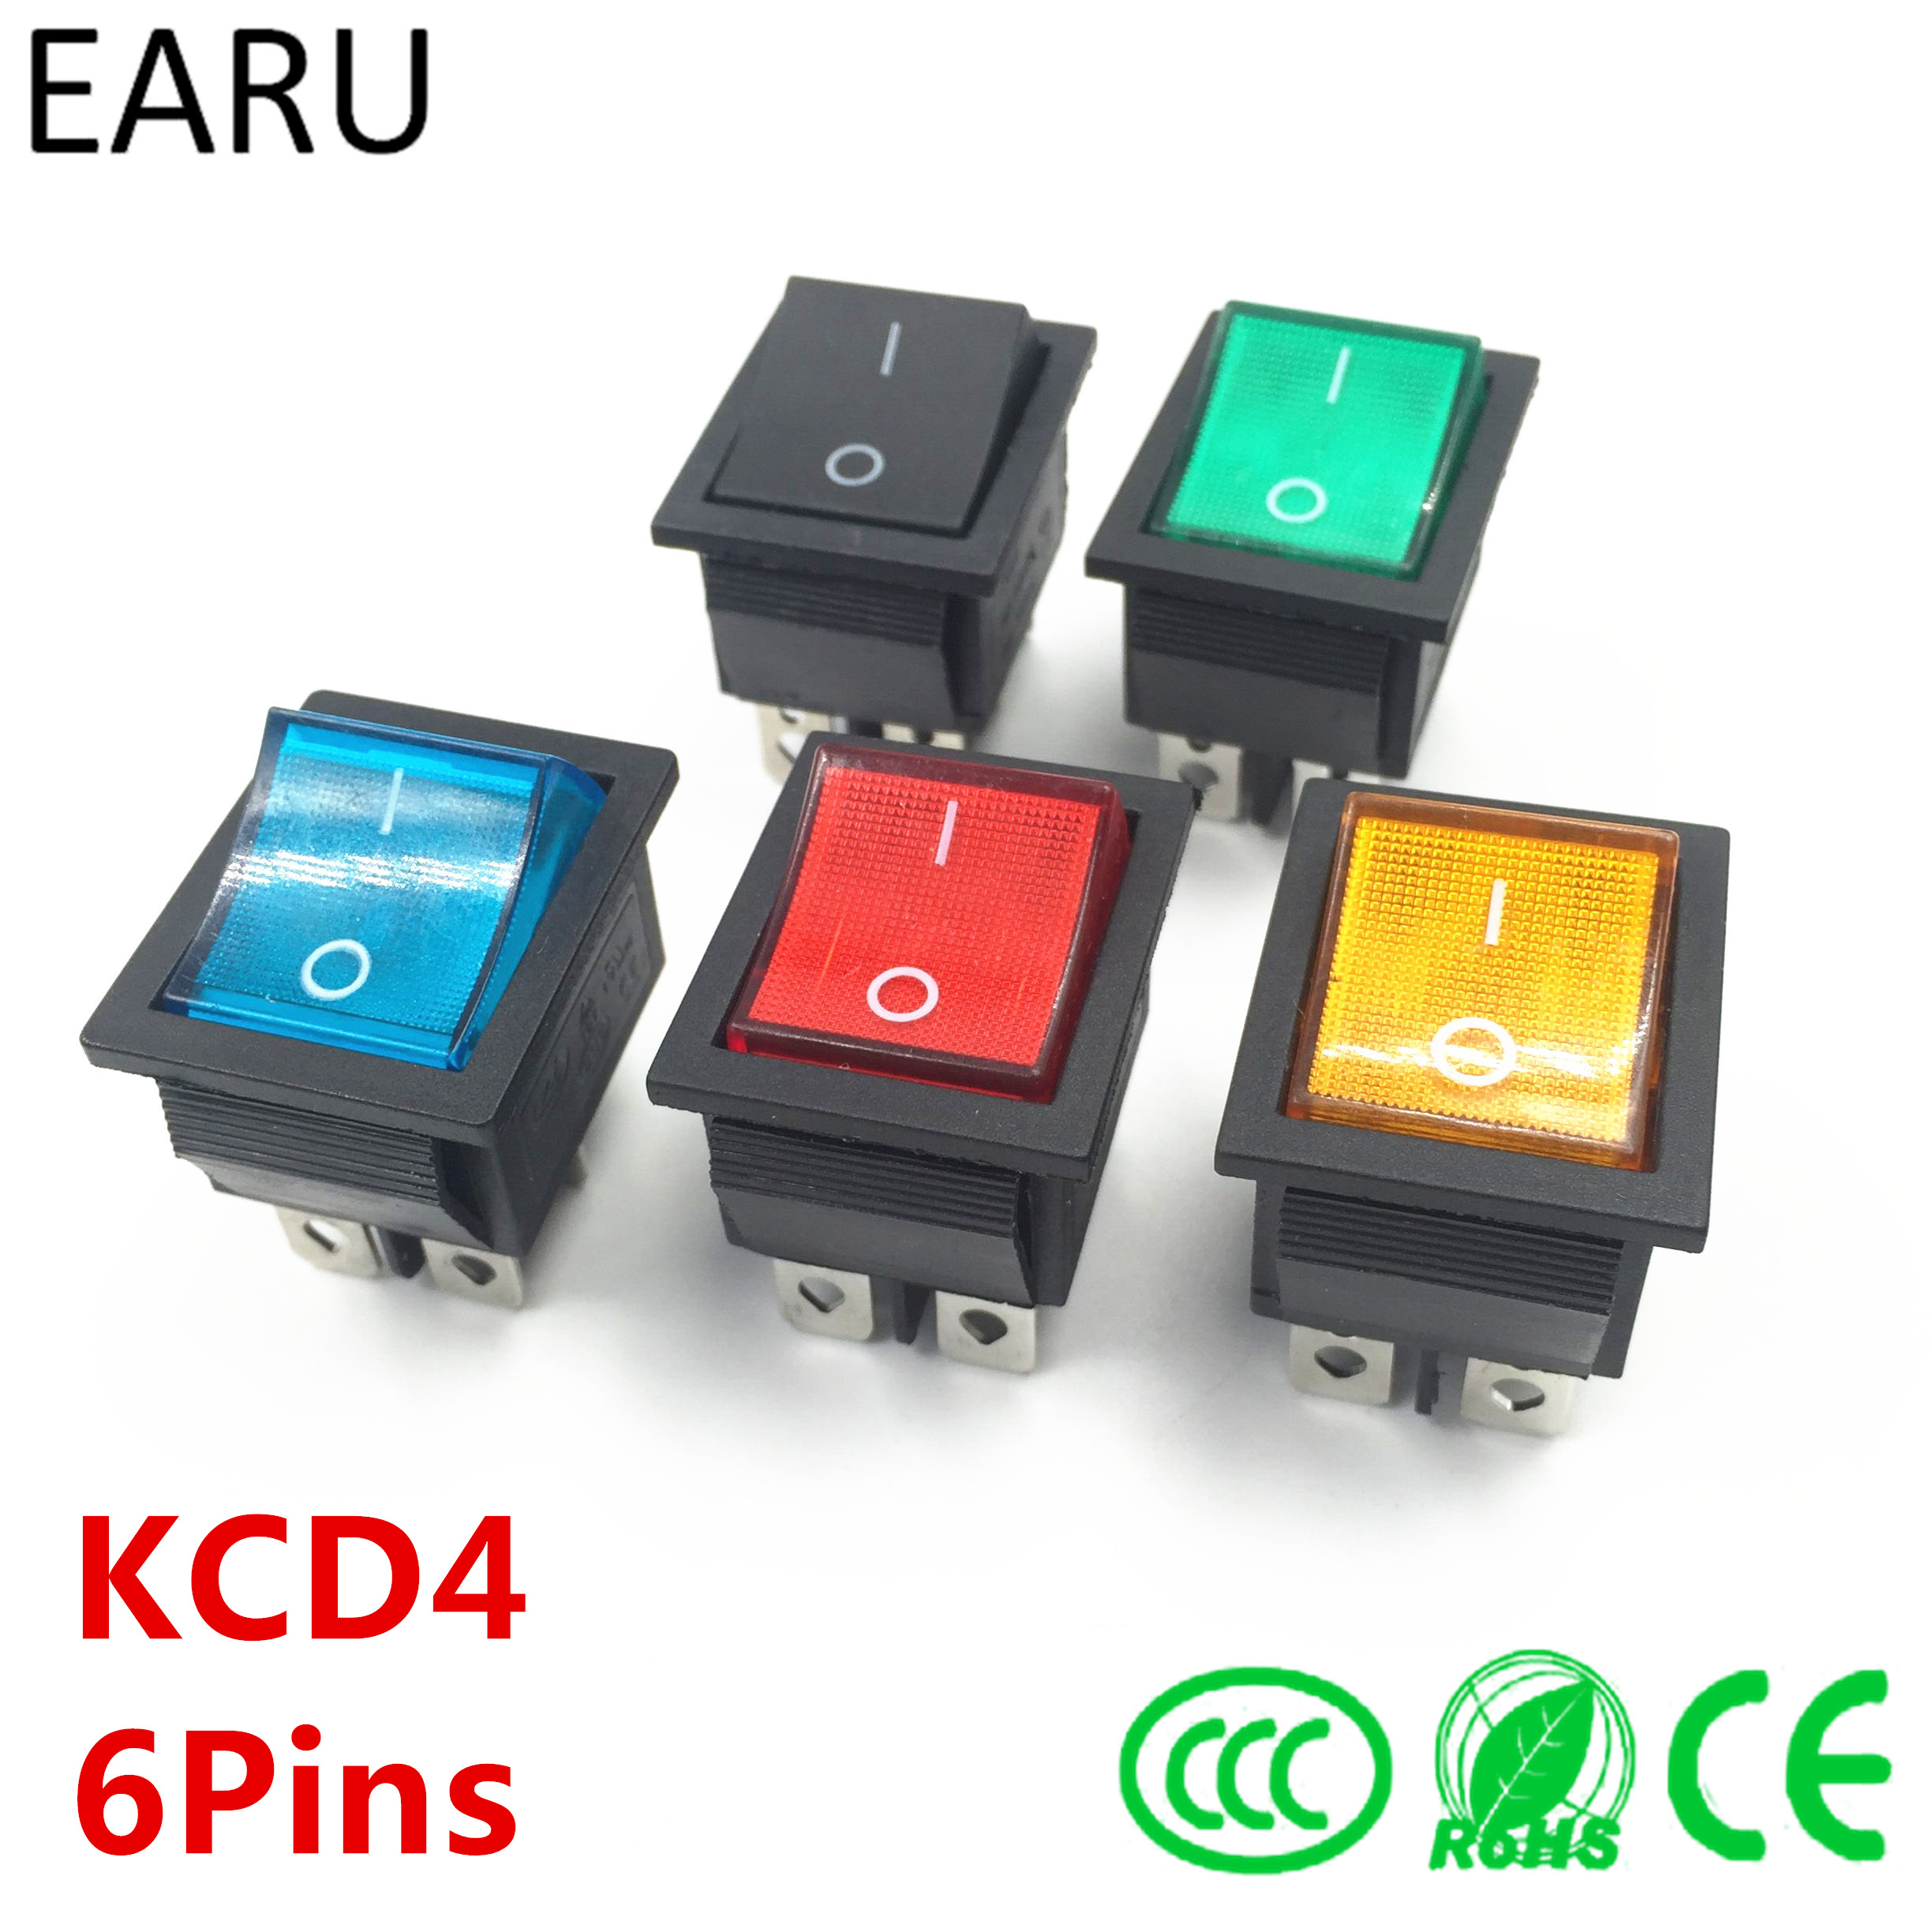 Latching Rocker Switch Power Switch I/O 6 Pins With Light 16A 250VAC 20A 125VAC KCD4 Green Red Yellow Blue Black Boat DPST g126y 2pcs red led light 25 31mm spst 4pin on off boat rocker switch 16a 250v 20a 125v car dashboard home high quality cheaper